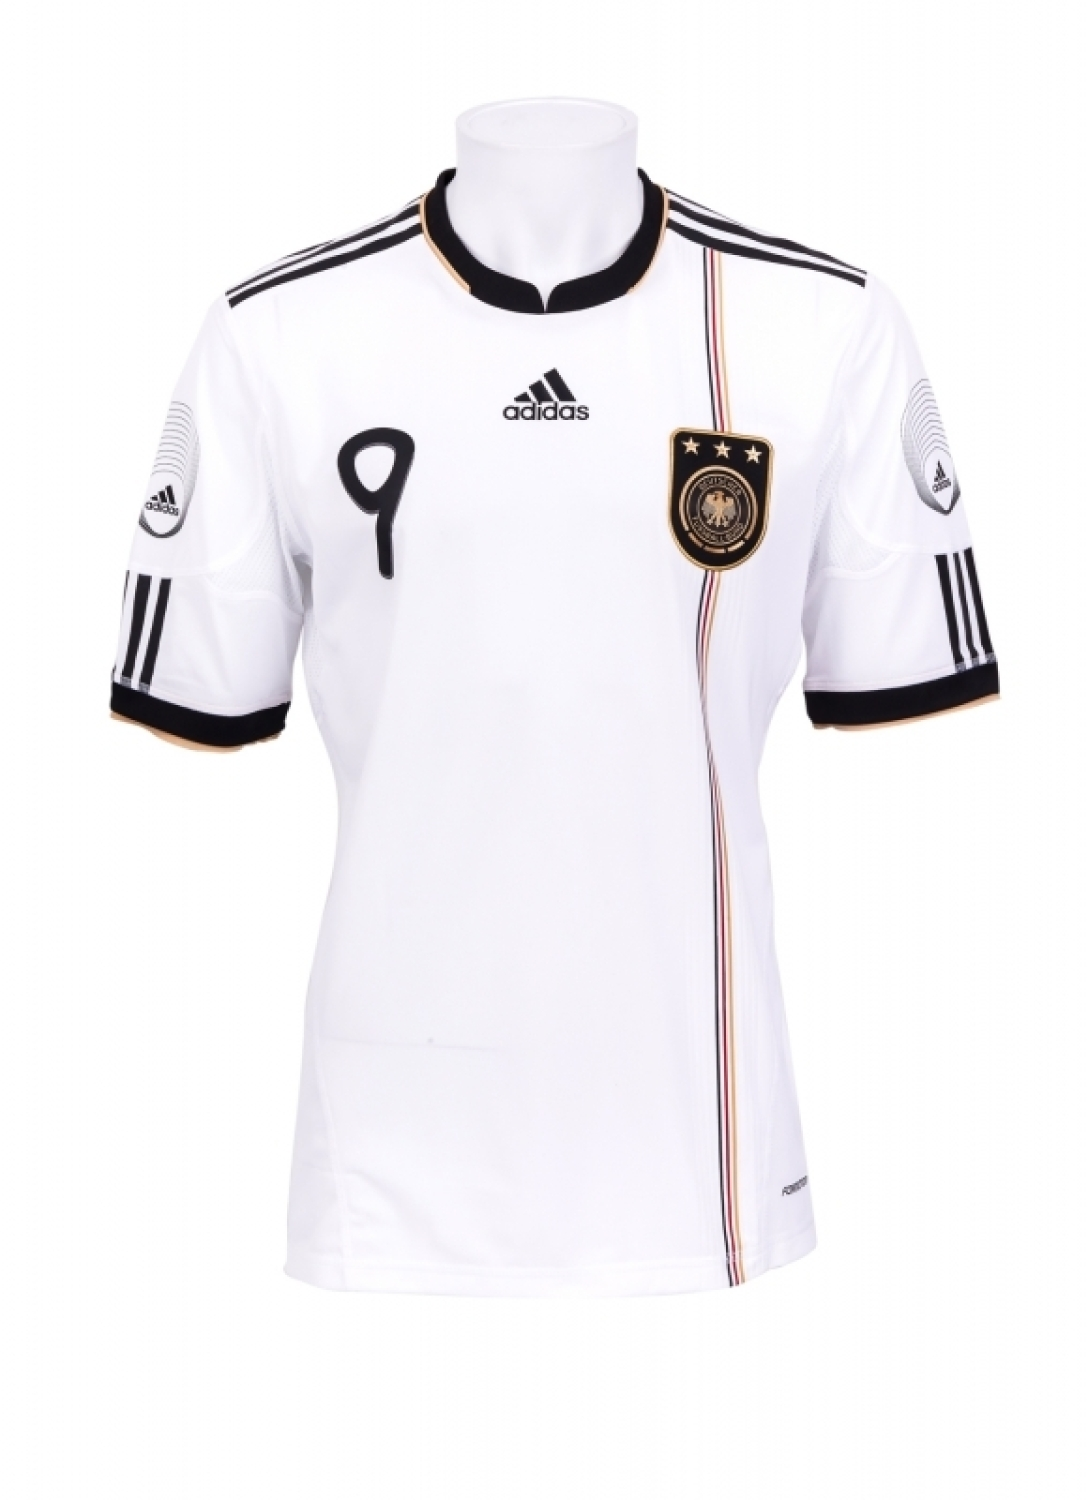 buy online 715ab 58efc ANDRÉ SCHÜRRLE 2011 GERMANY NATIONAL FOOTBALL TEAM MATCH ...